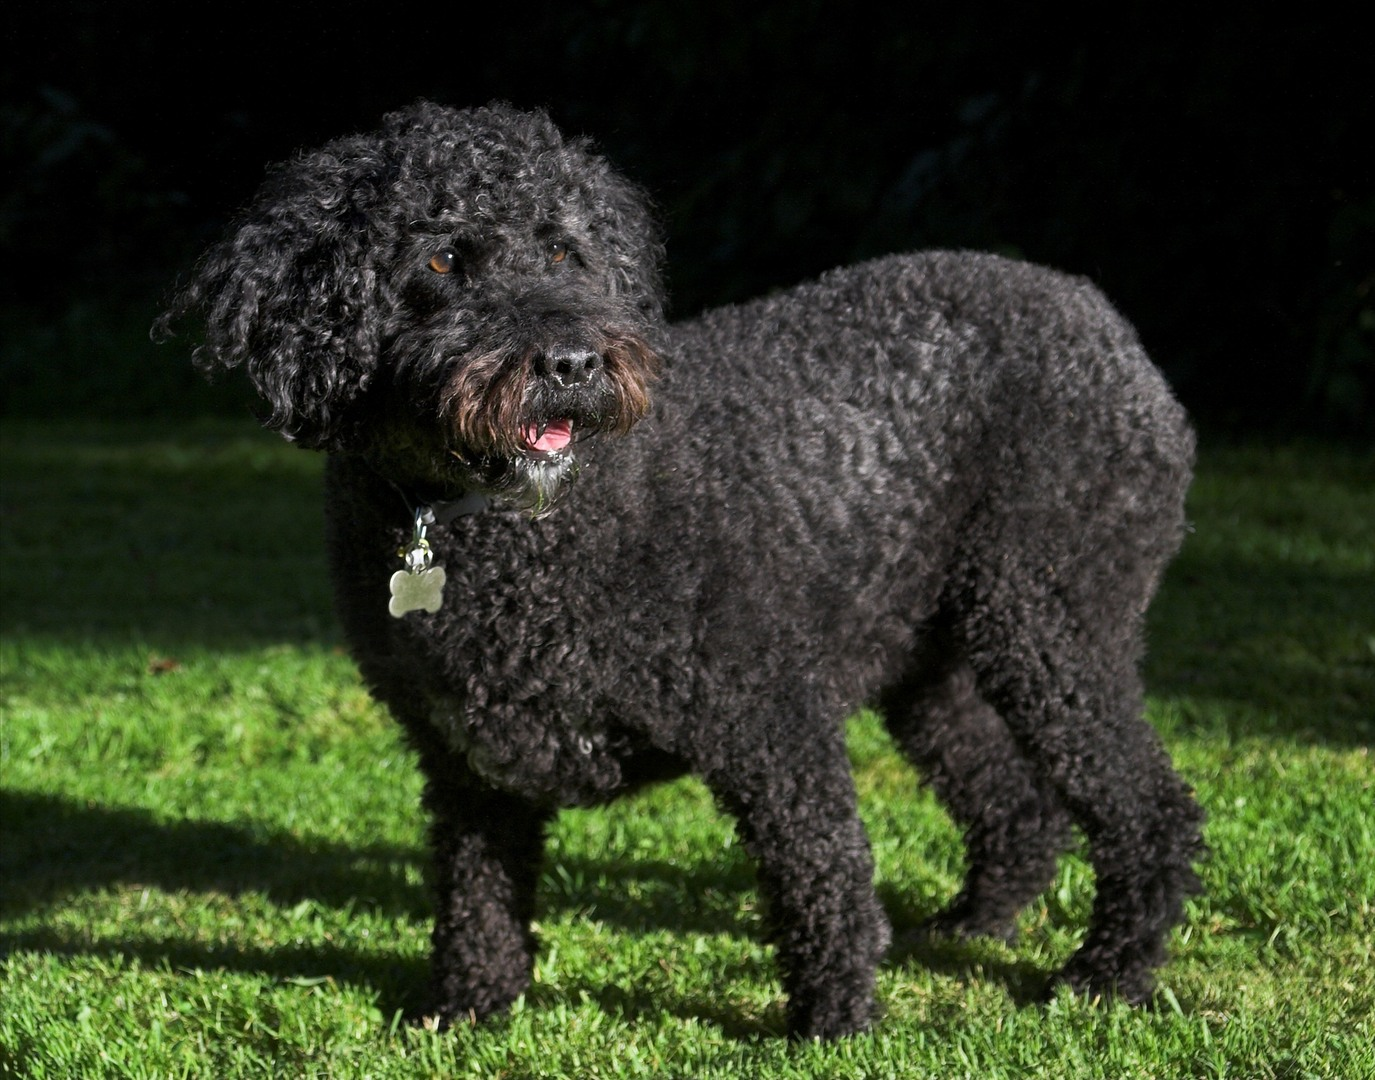 Spanish Water Dog on the grass wallpaper